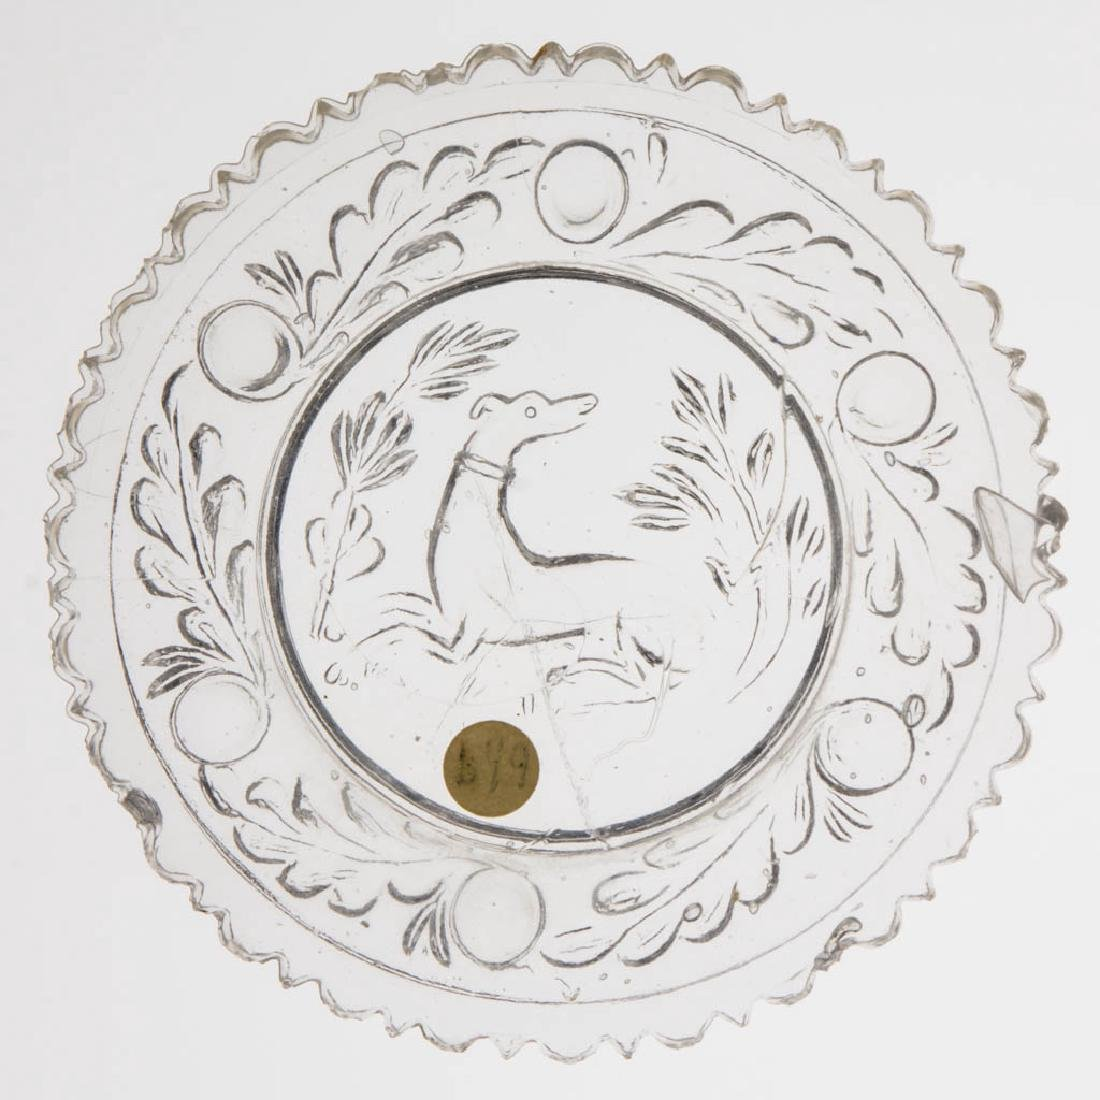 LEE/ROSE NO. 699 CUP PLATE